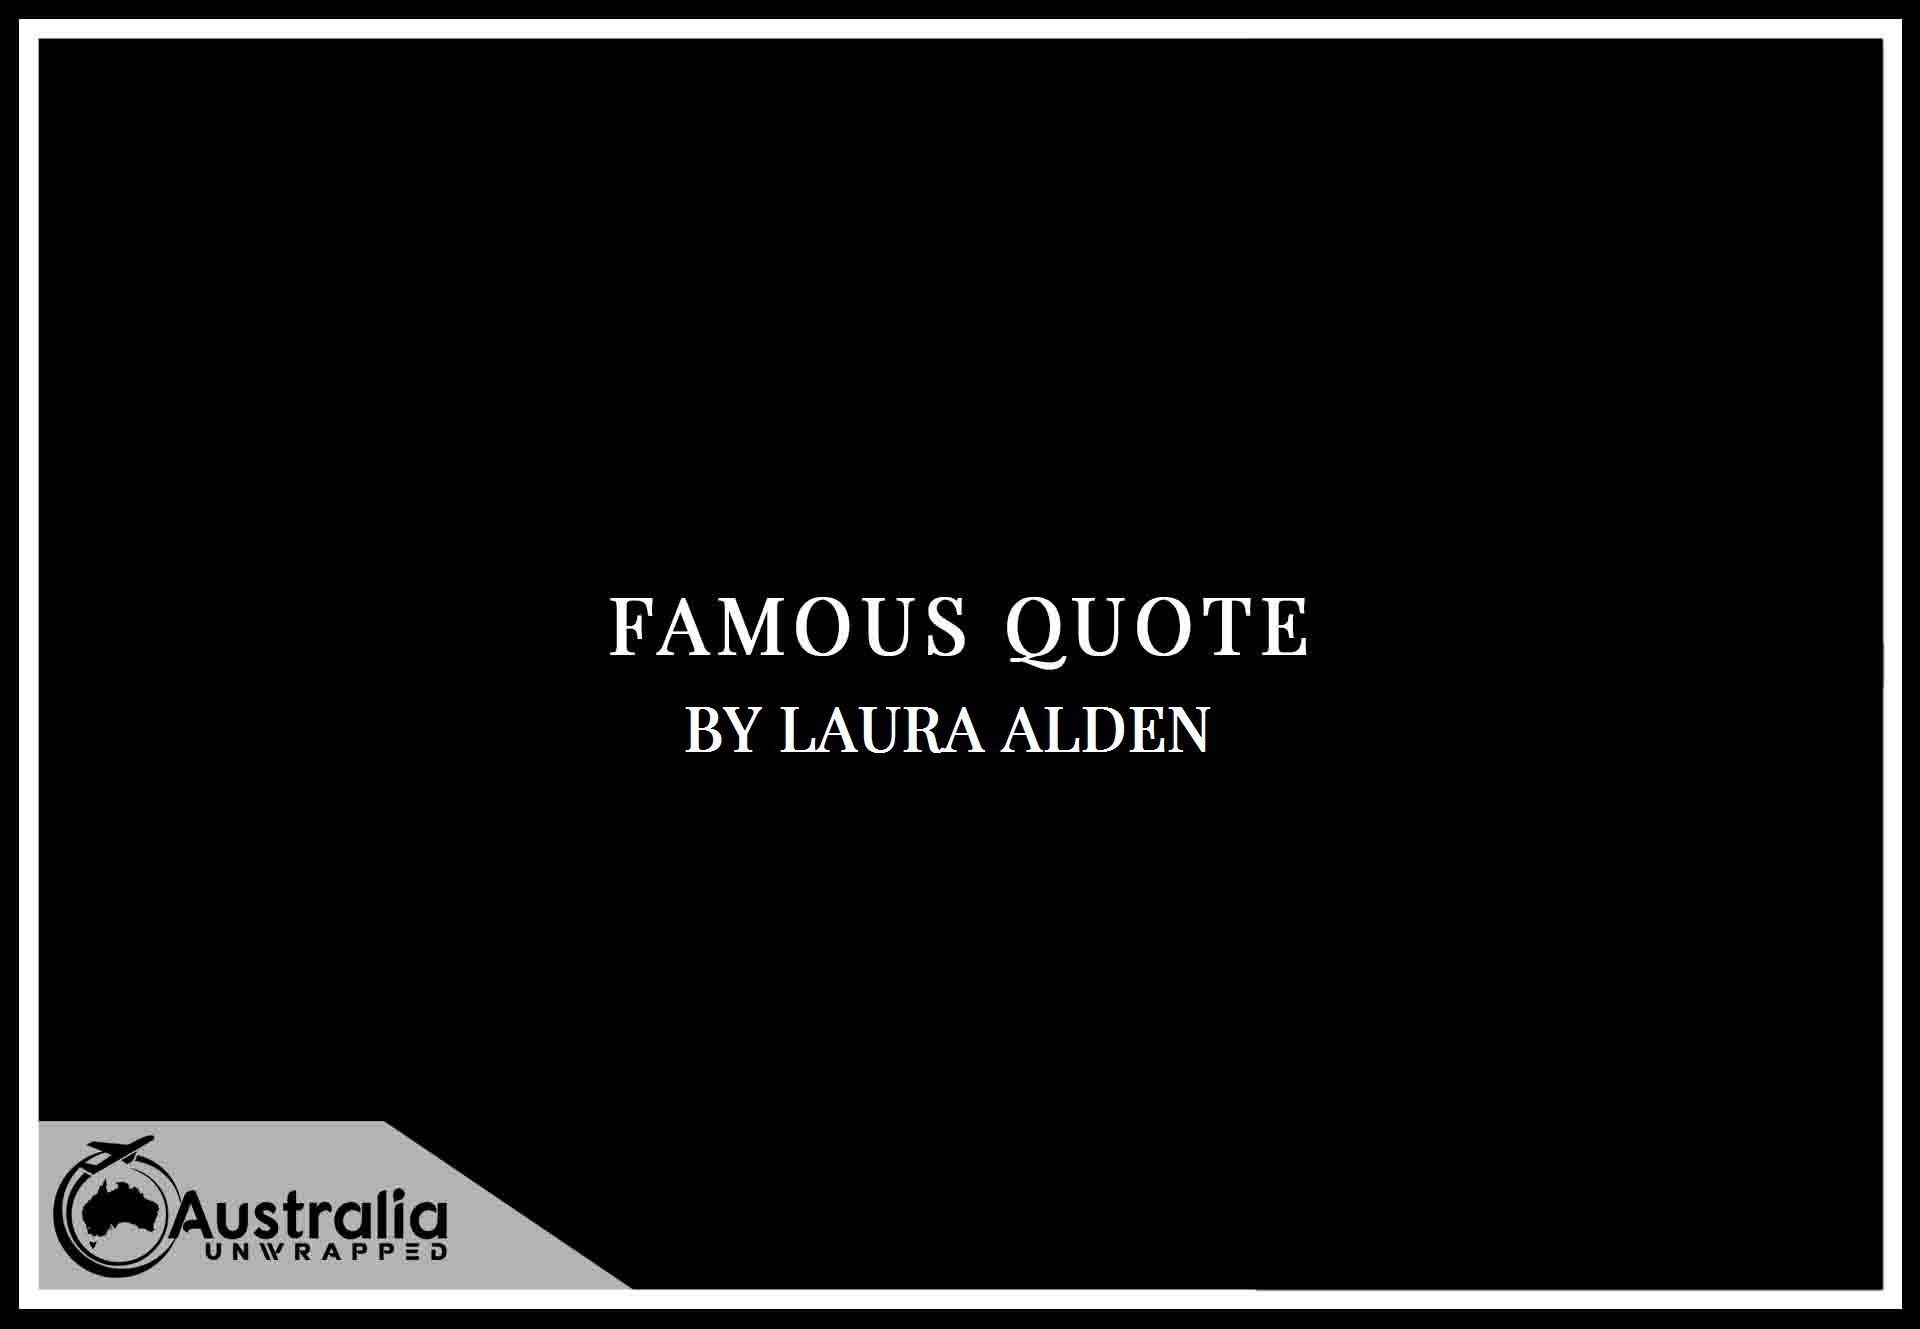 Laura Alden's Top 1 Popular and Famous Quotes